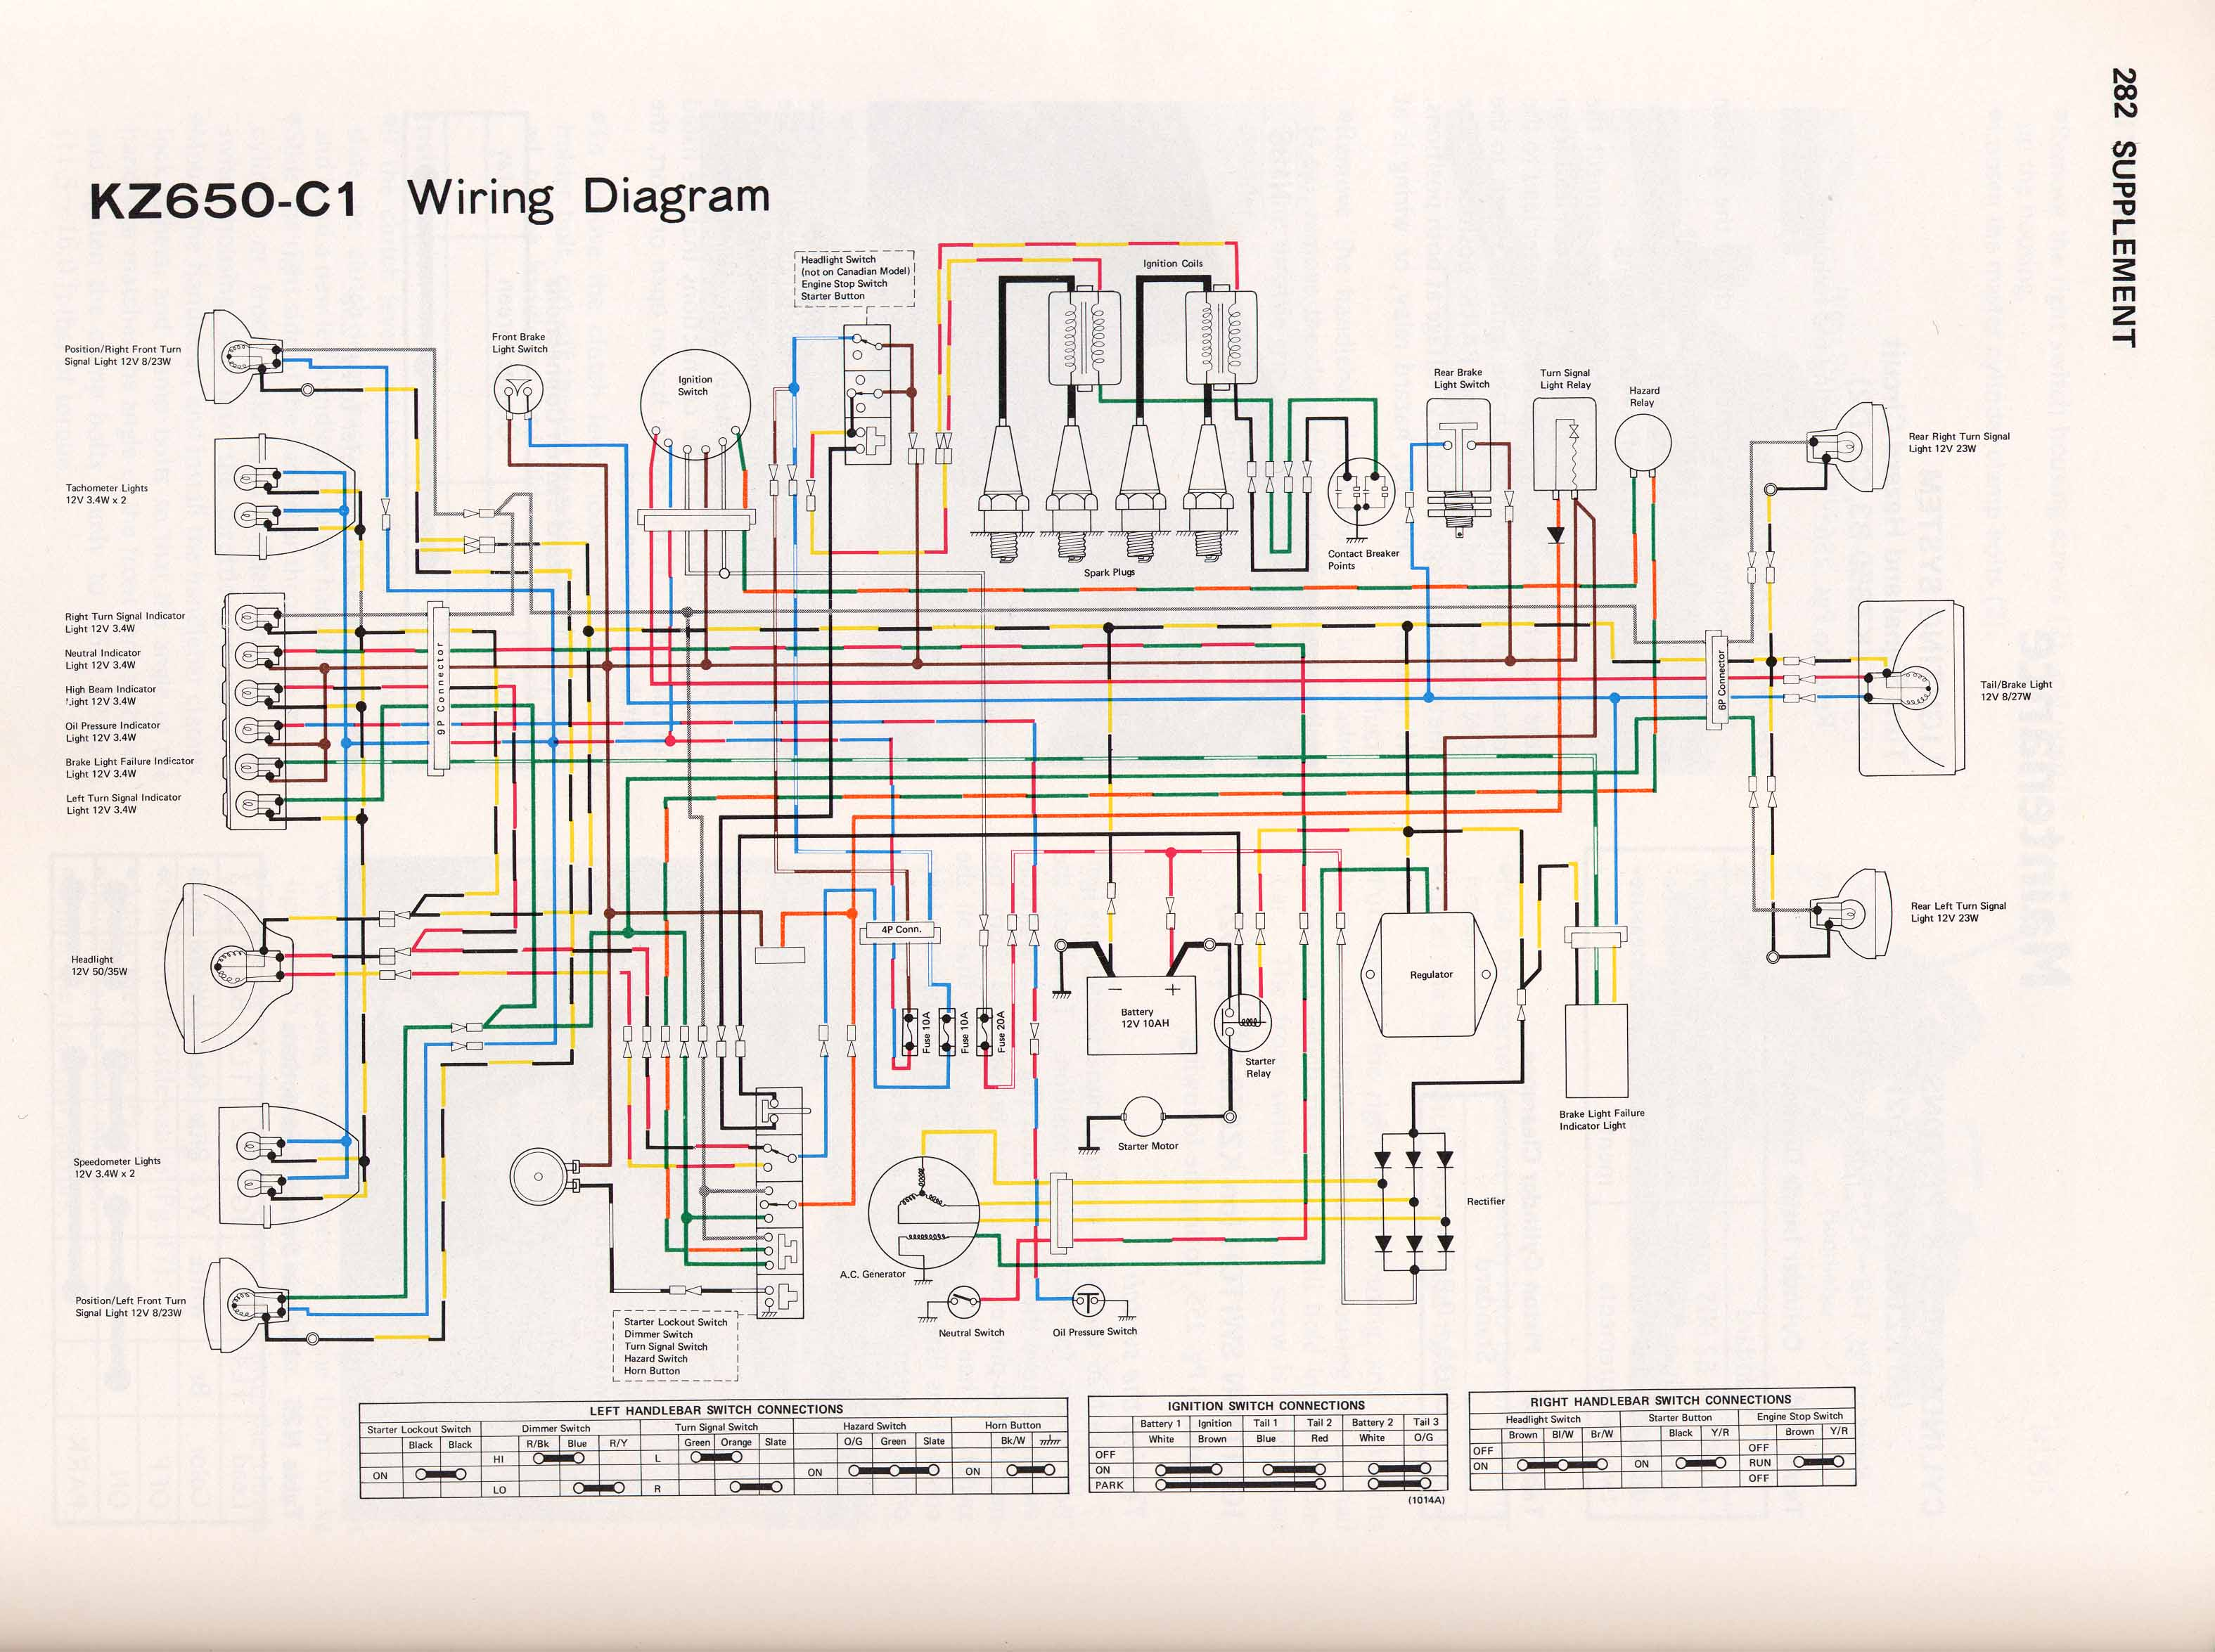 KZ650 C1 kz650 info wiring diagrams kz750 wiring diagram at n-0.co